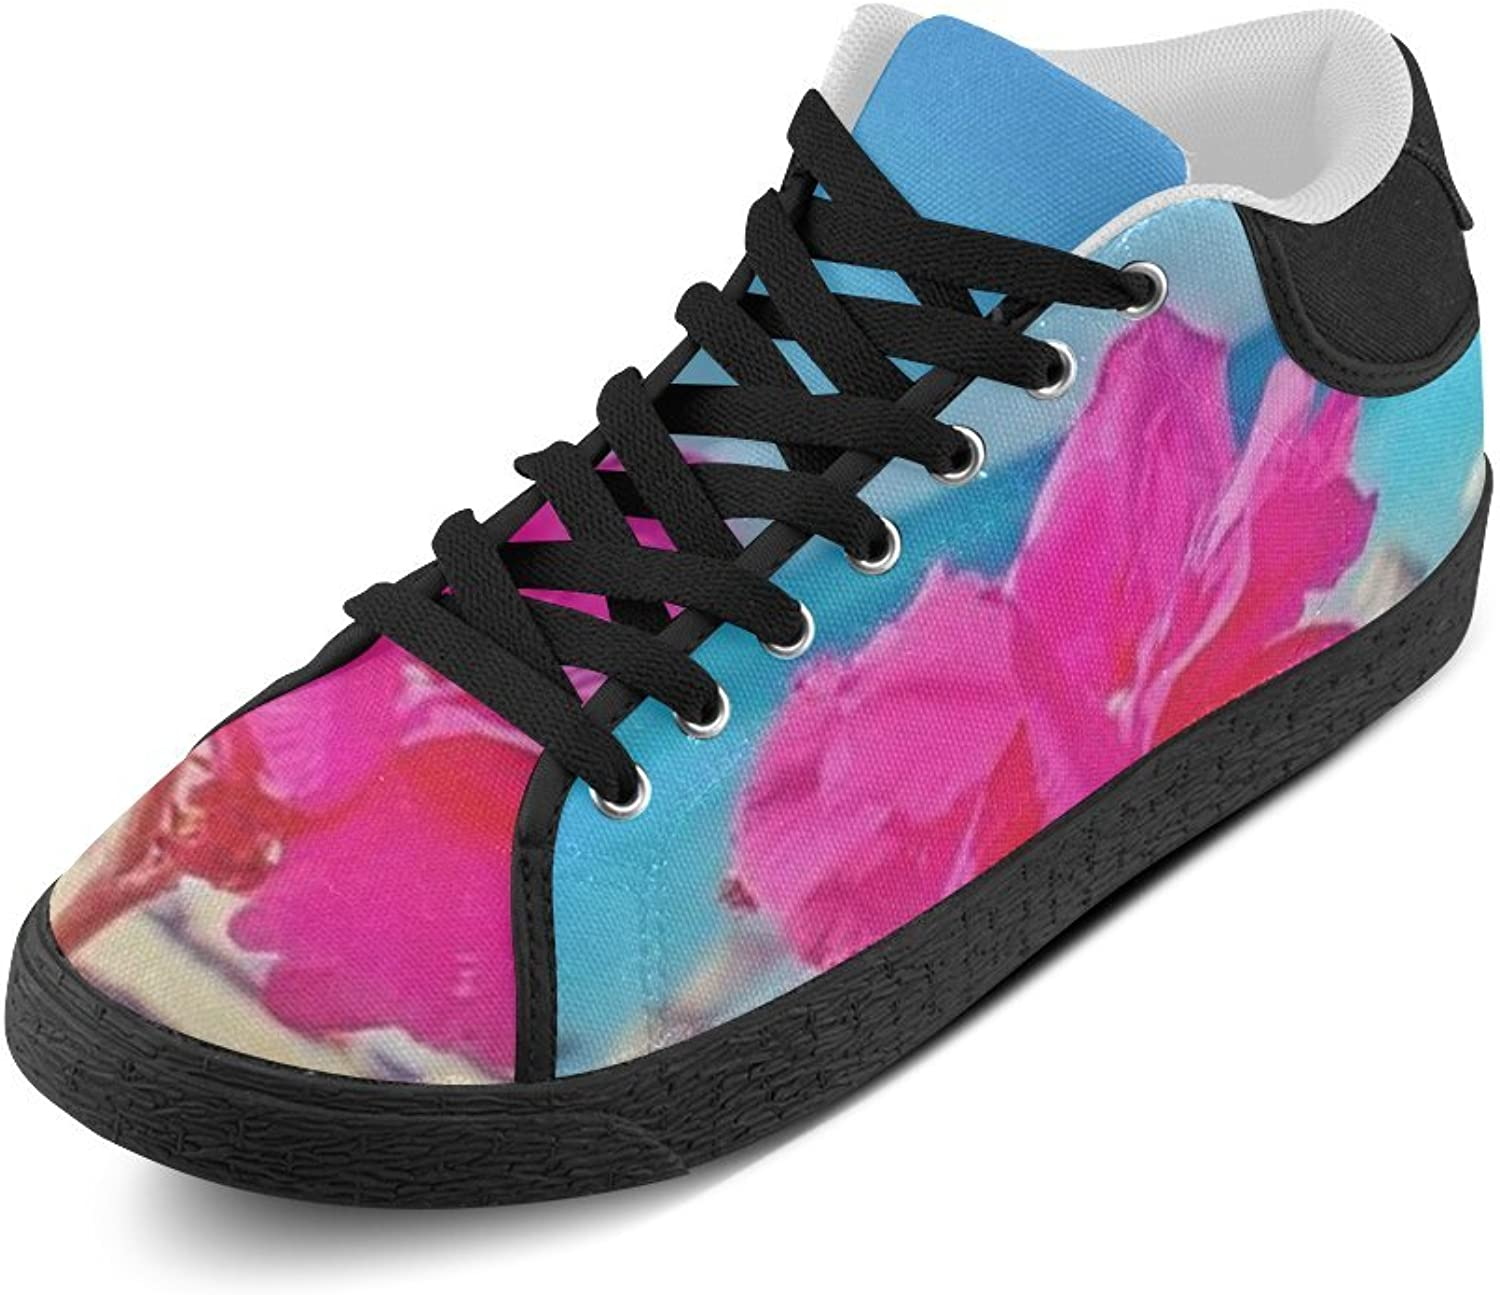 CERLYRUAN Beach and Pink Flower Canvas Chukka Canvas Women's shoes